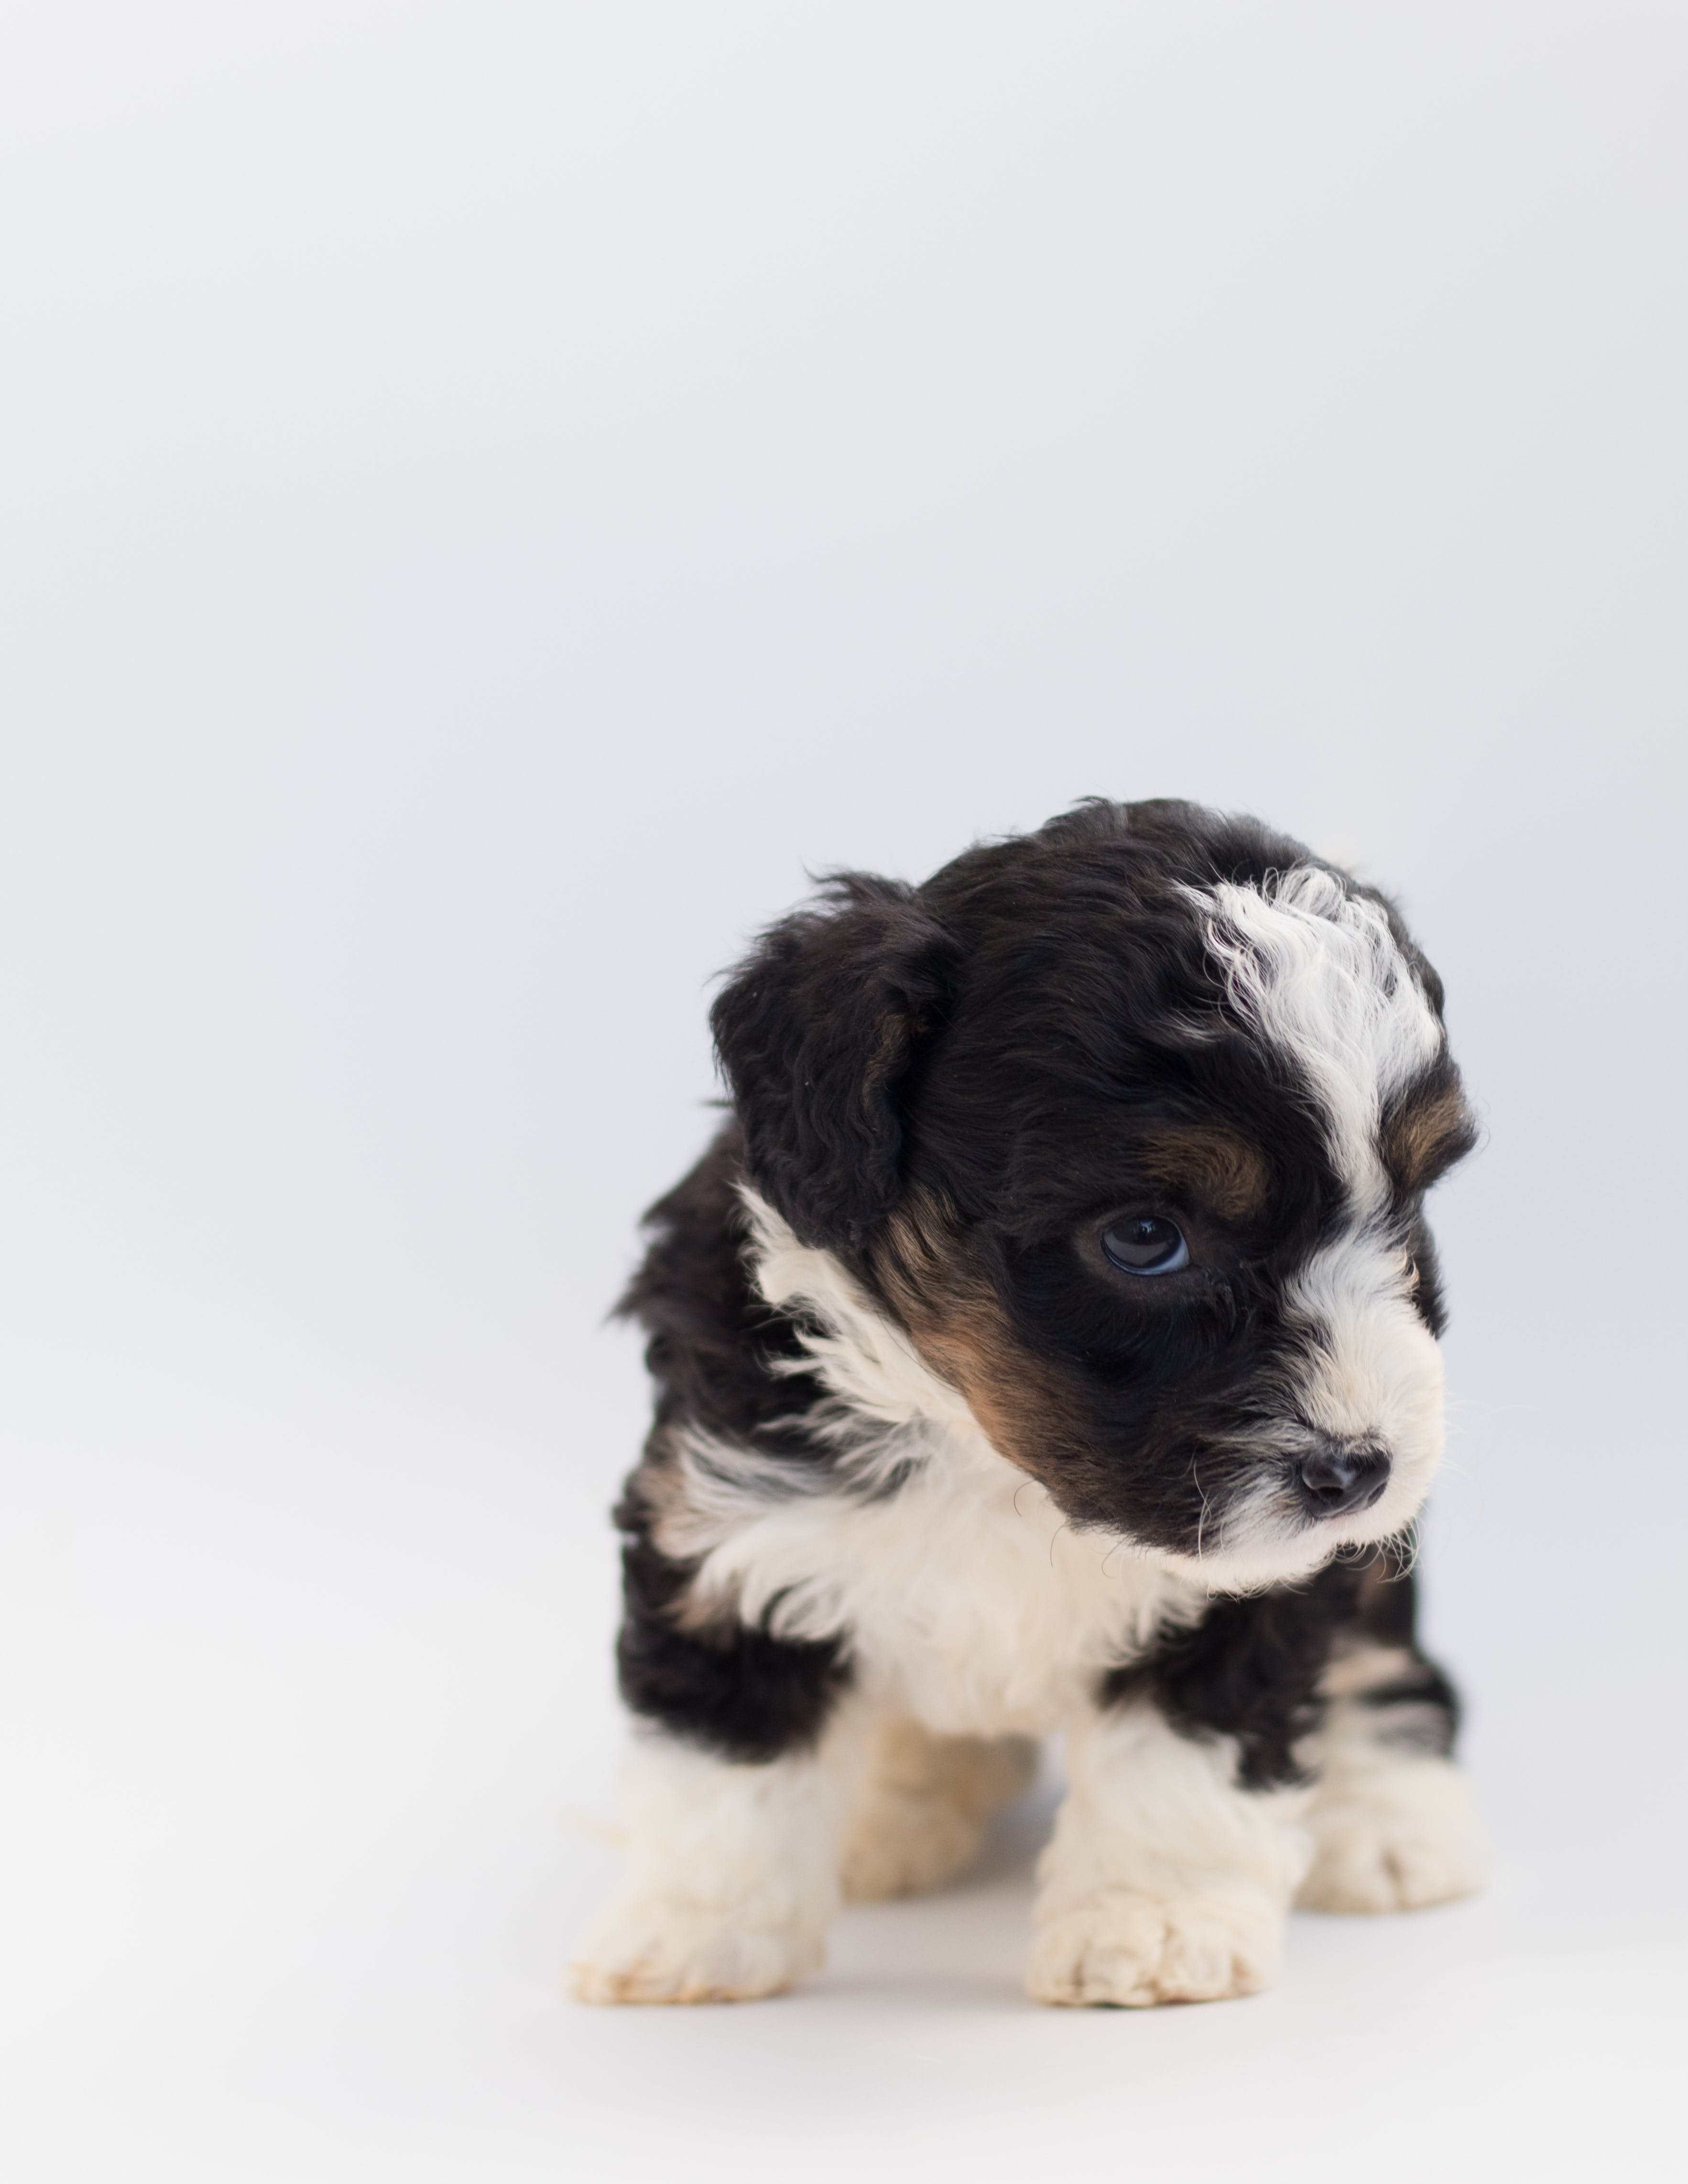 Short-coated Black and White Puppy